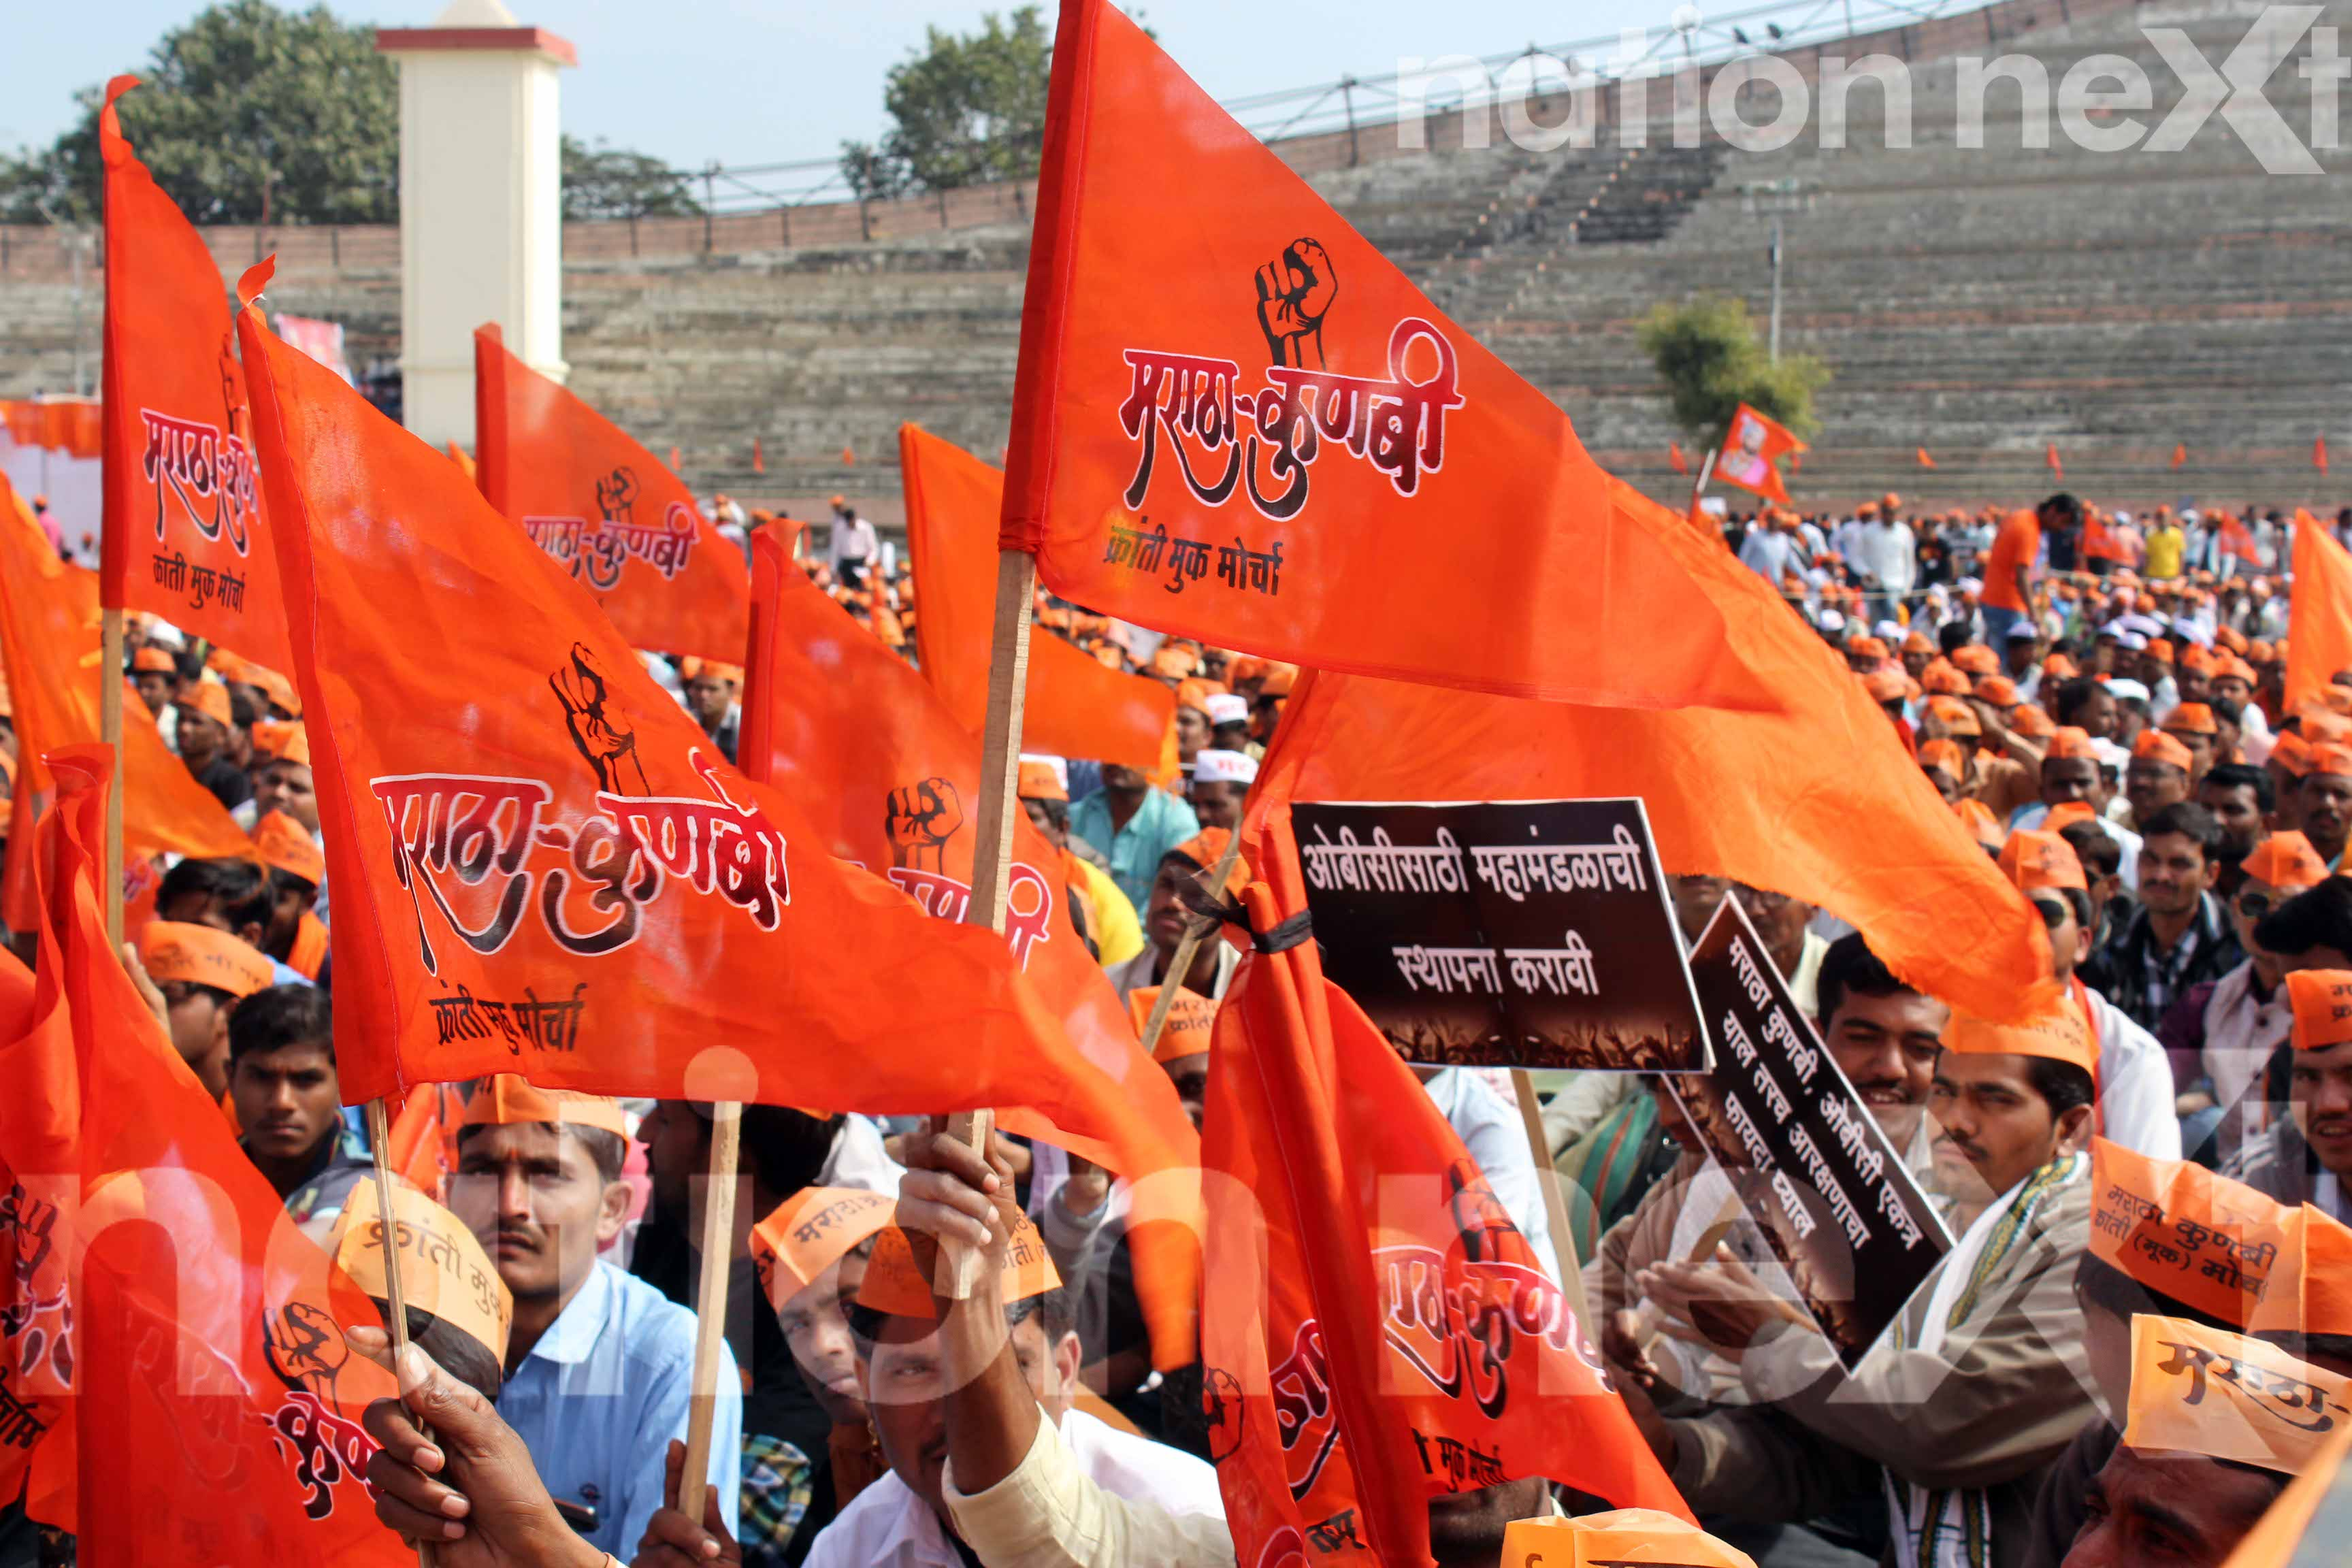 In spite of assurances given by the Maharashtra CM Devendra Fadnavis, the Maratha community has called for a Maharashtra Bandh on August 9.